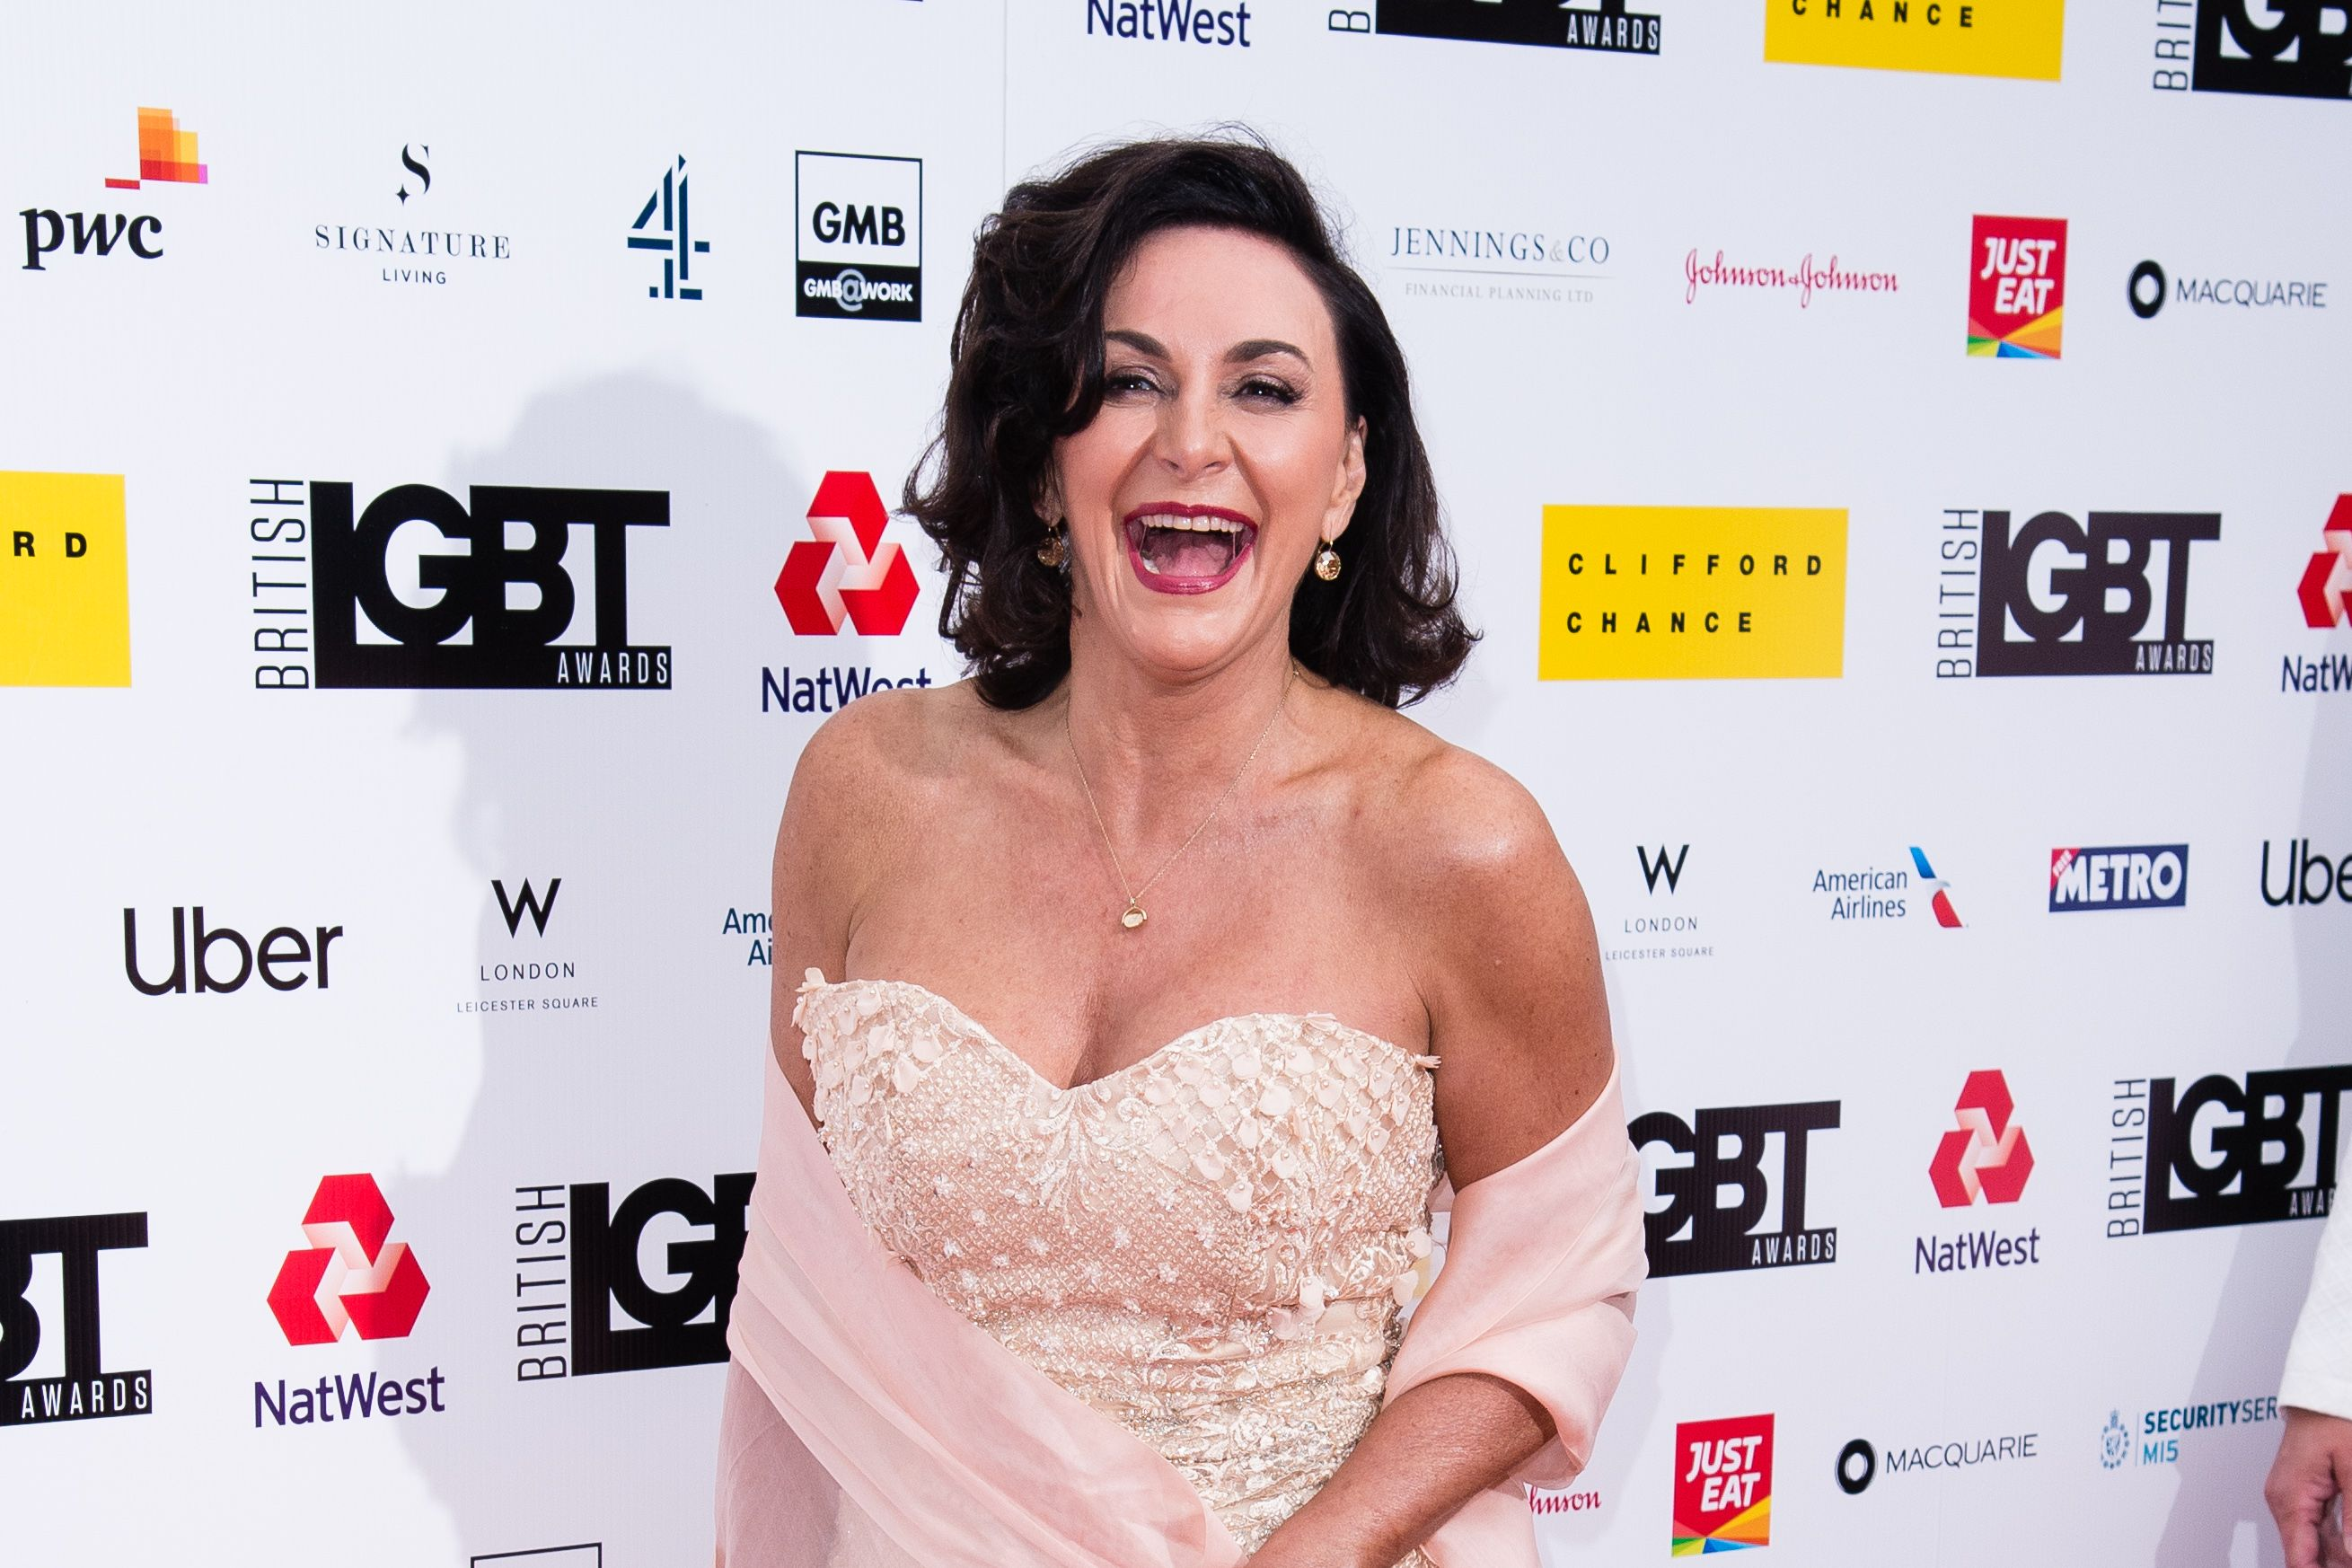 Strictly Come Dancing's Shirley Ballas denies claims she wants her son as Darcey Bussell's replacement